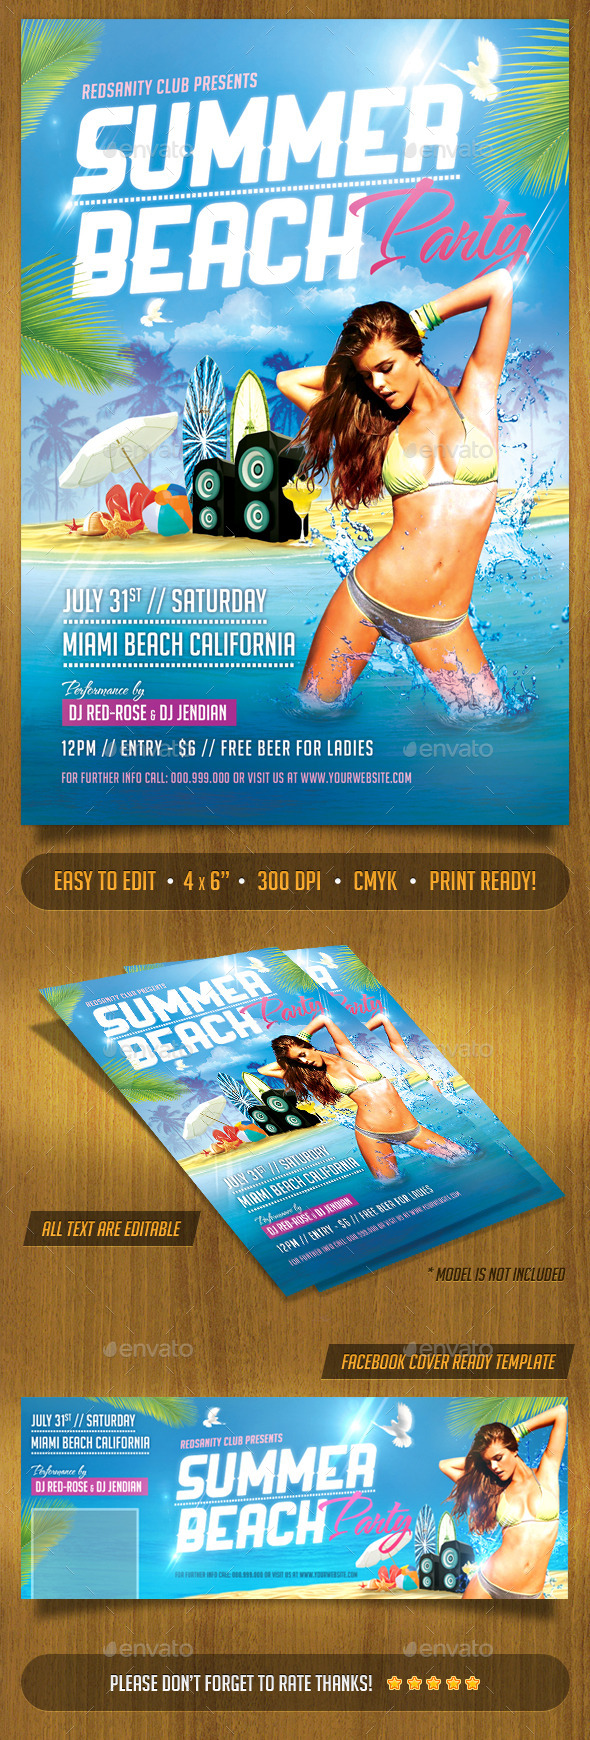 Summer Beach Party Flyer Plus FB Cover - Clubs & Parties Events